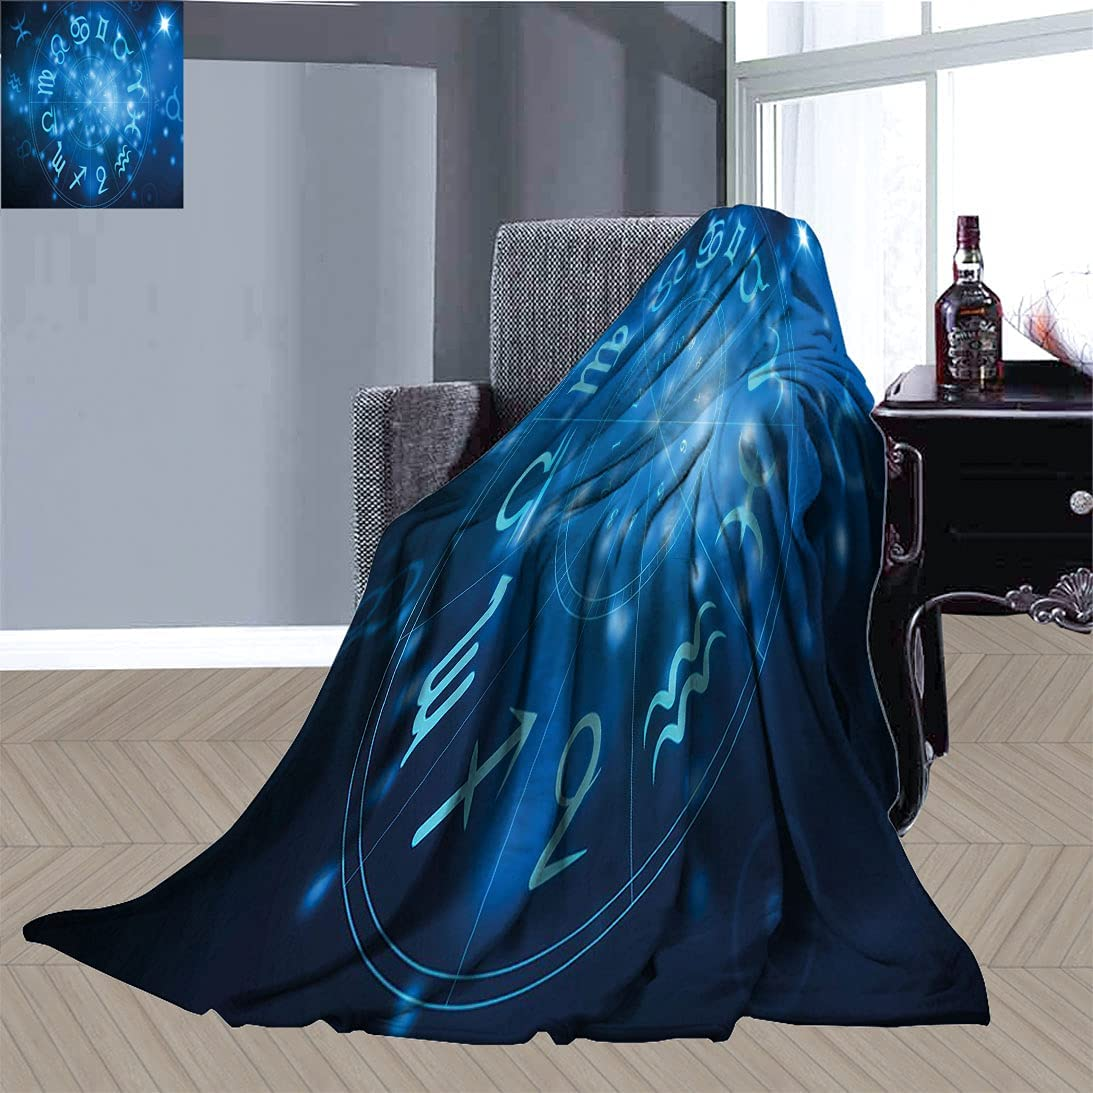 Astrology Super Soft Bed Blankets Max 54% OFF with Abstract Max 70% OFF Horoscope Wheel